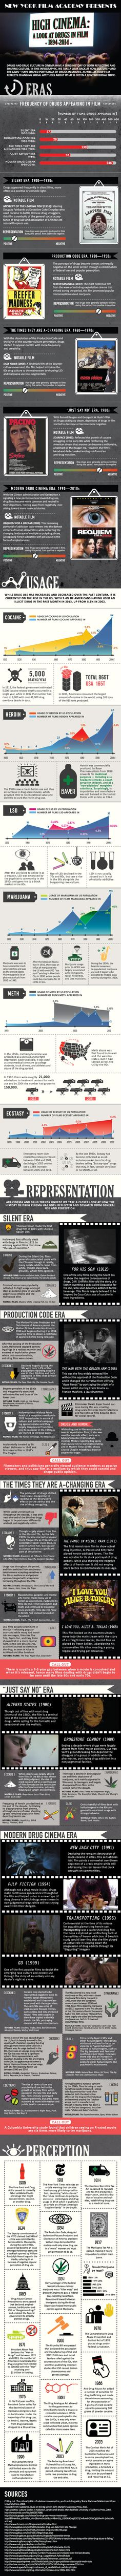 High Cinema Drugs in Film Infographic analyzing stats and facts surrounding the complex relationship between narcotics and film, which has existed since the birth of cinema. This infographic was later turned into a videographic, which can be viewed here: https://www.nyfa.edu/nyfa-news/drugs-in-film.php#.Vqqm0GQrKX0